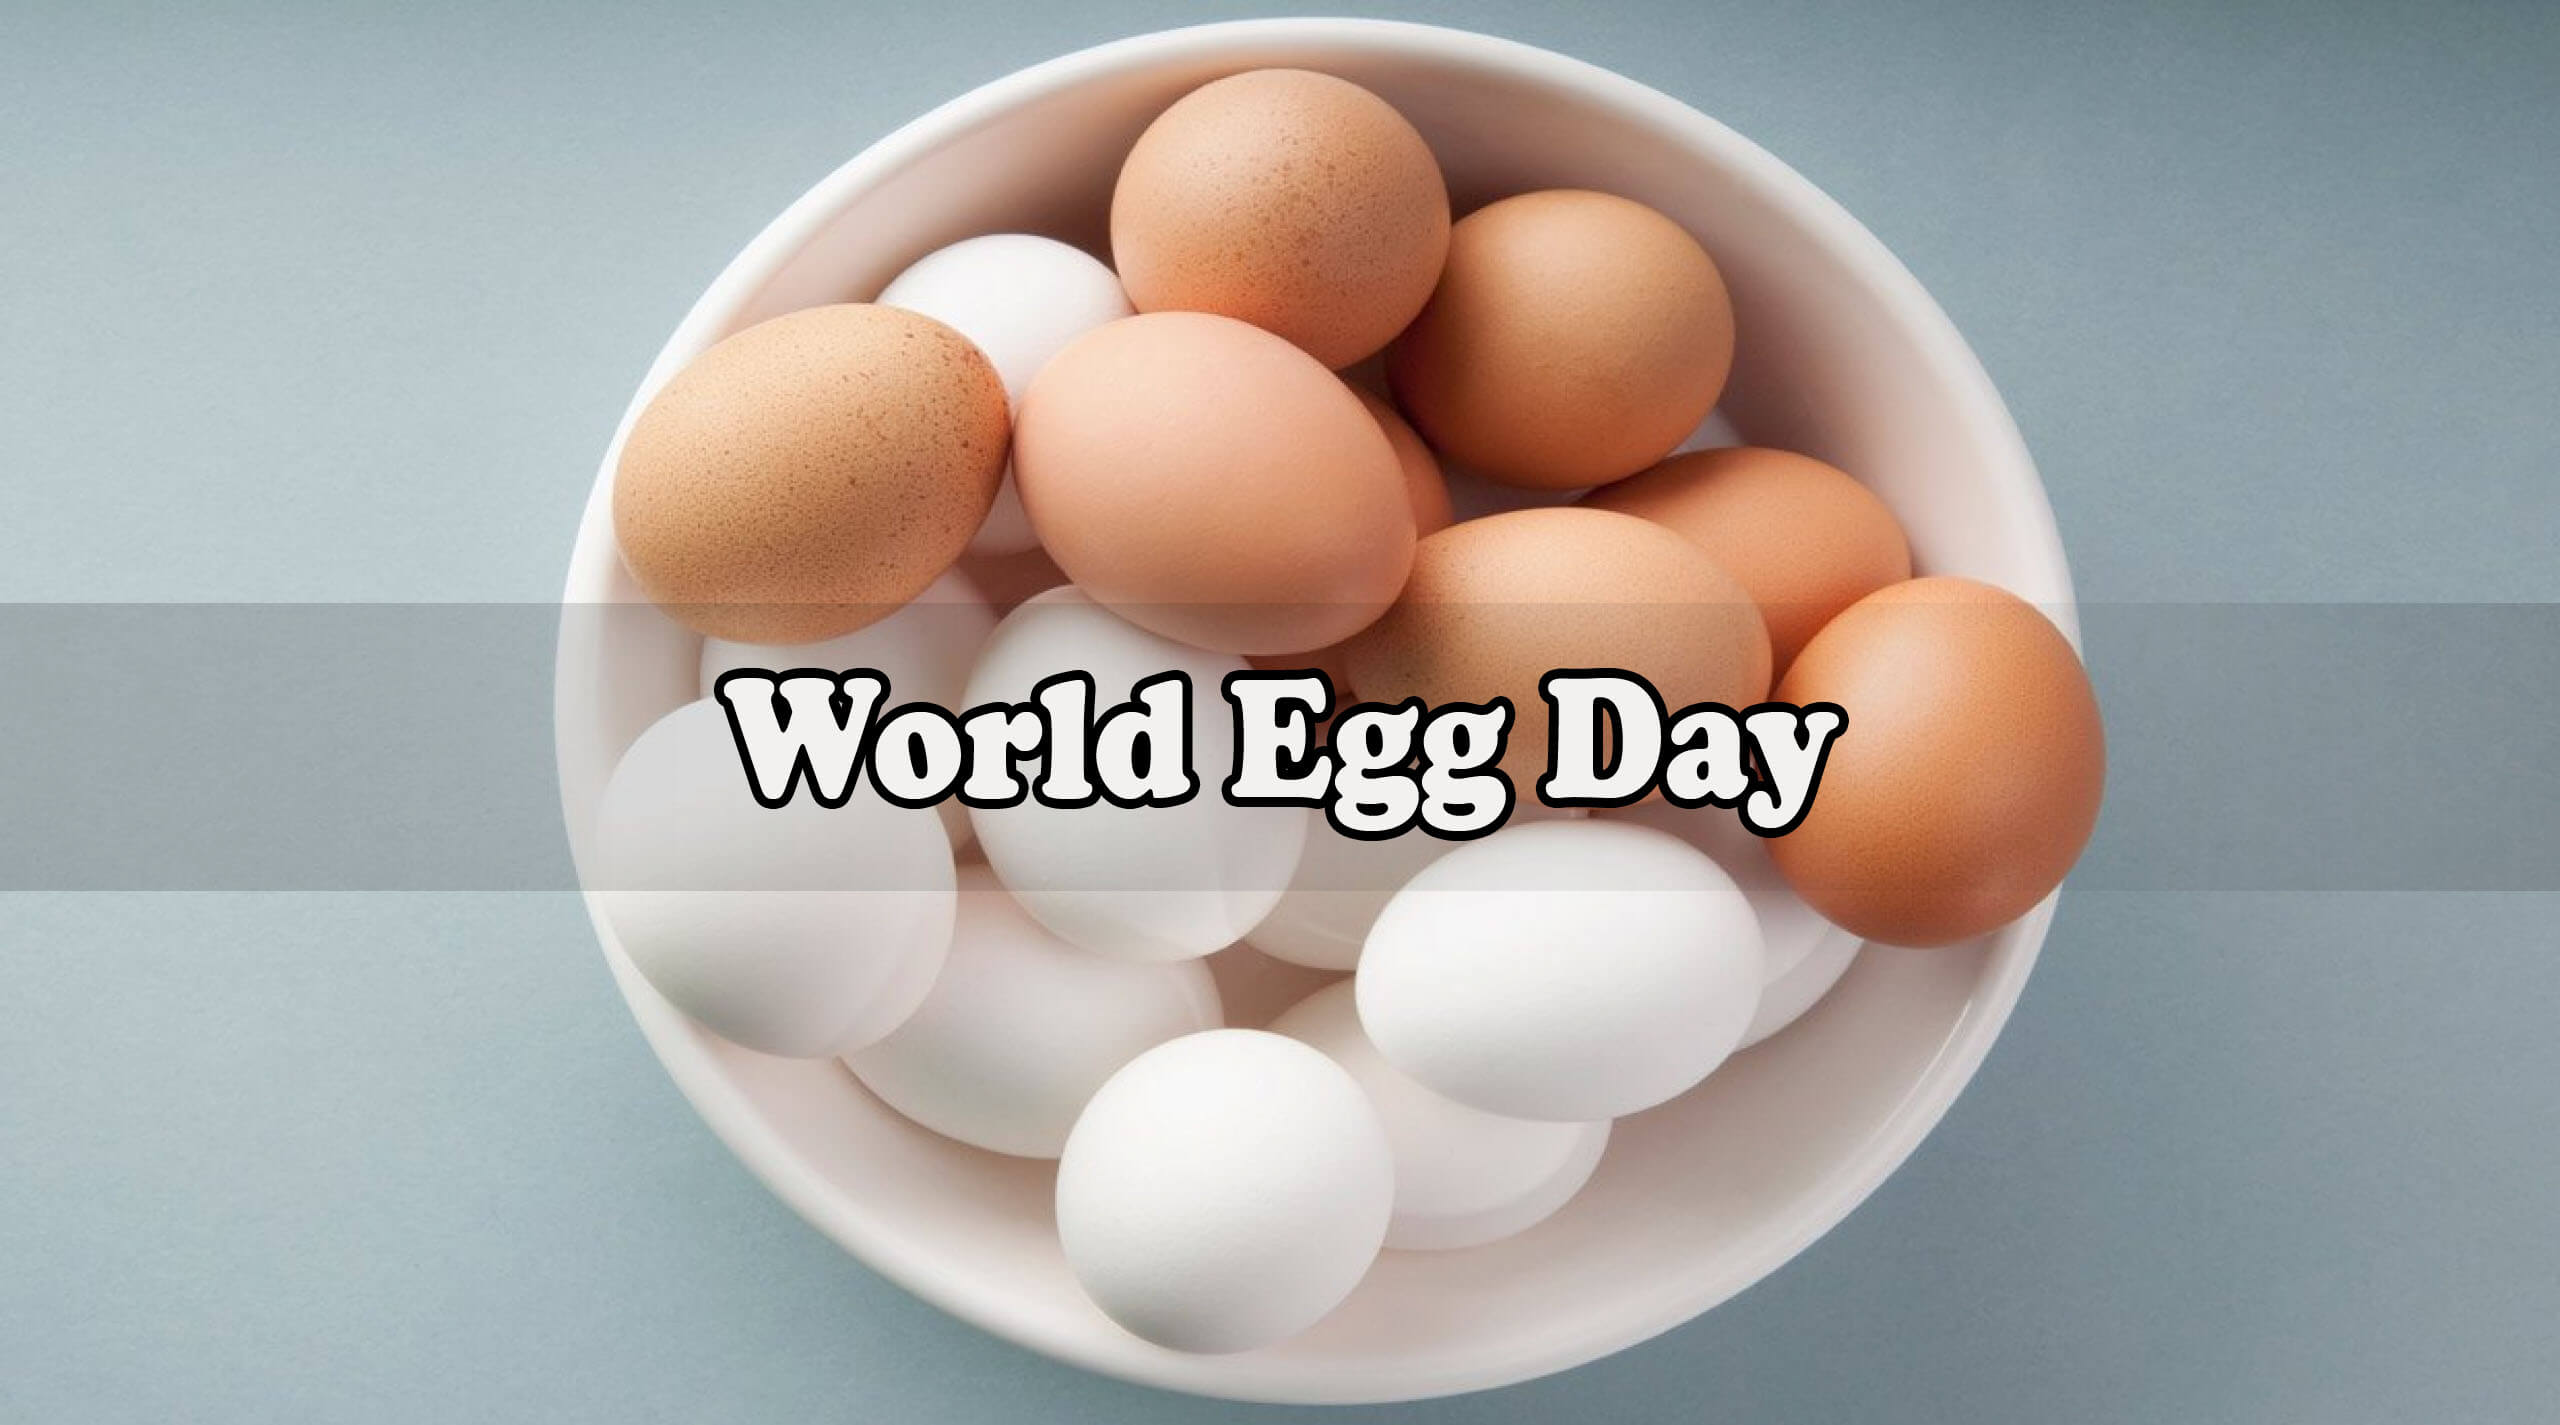 world egg day wishes white brown eggs cup image wallpaper